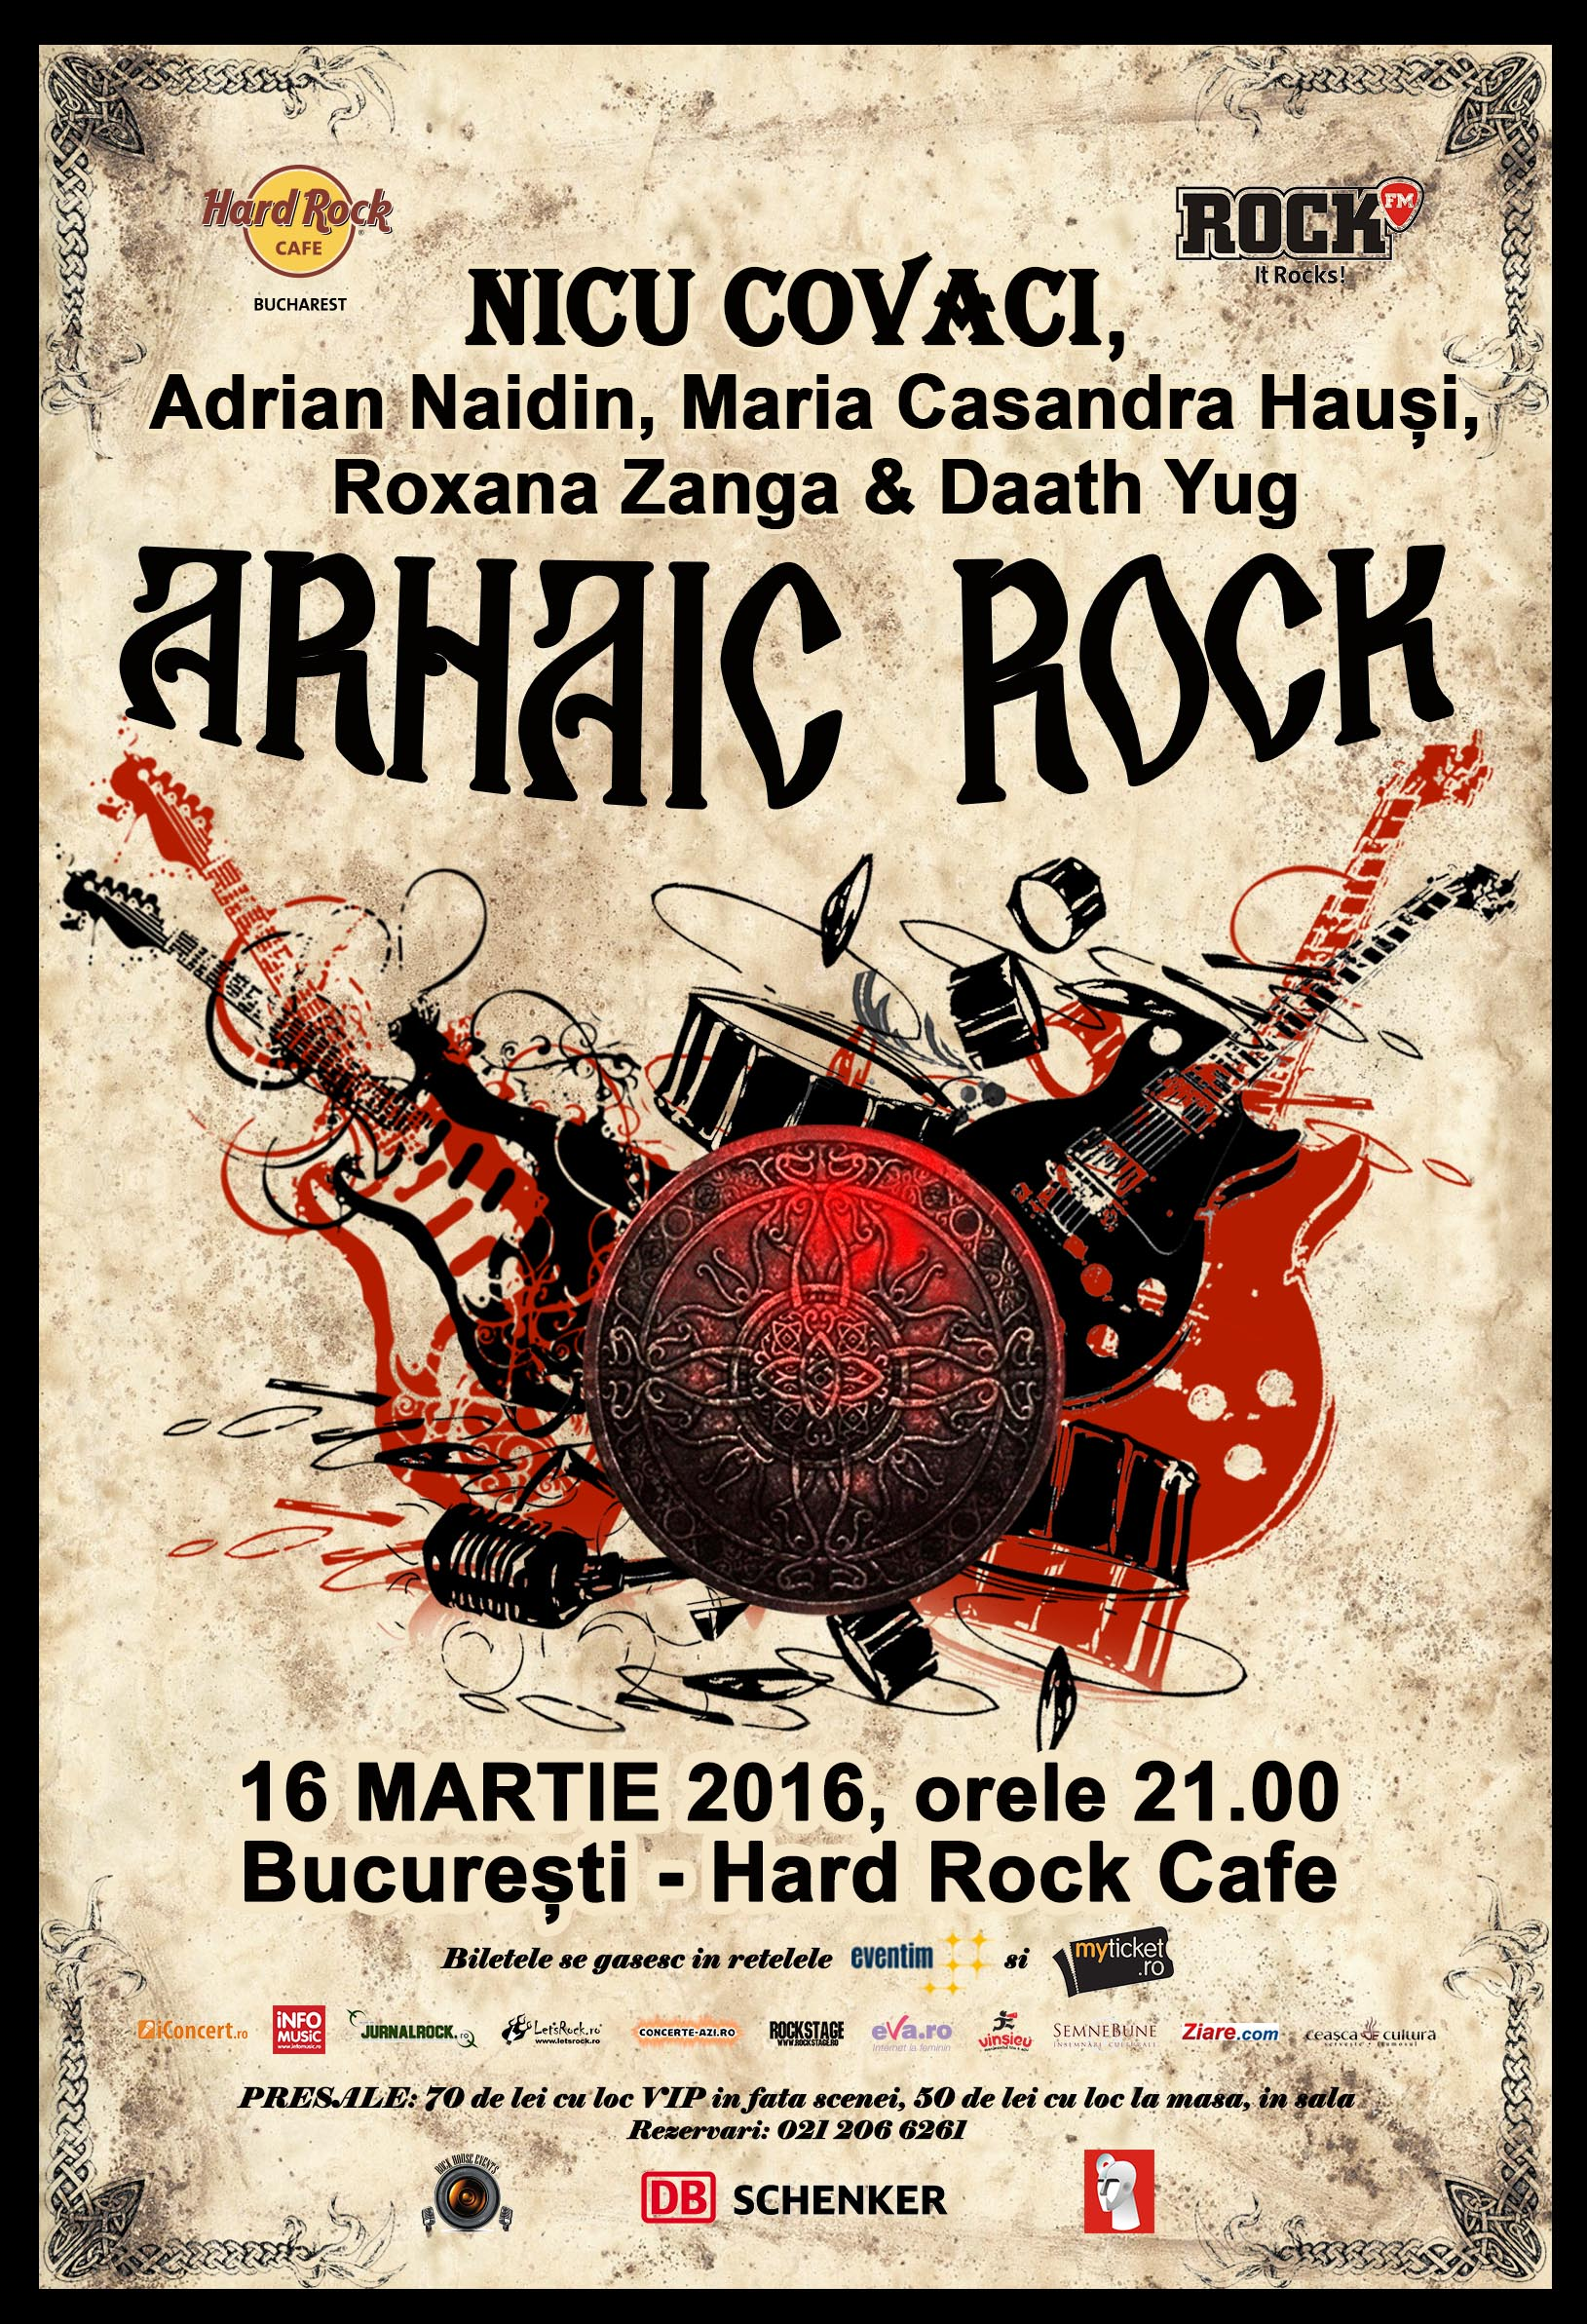 Afiș Arhaic Rock Hard Rock Cafe 2016